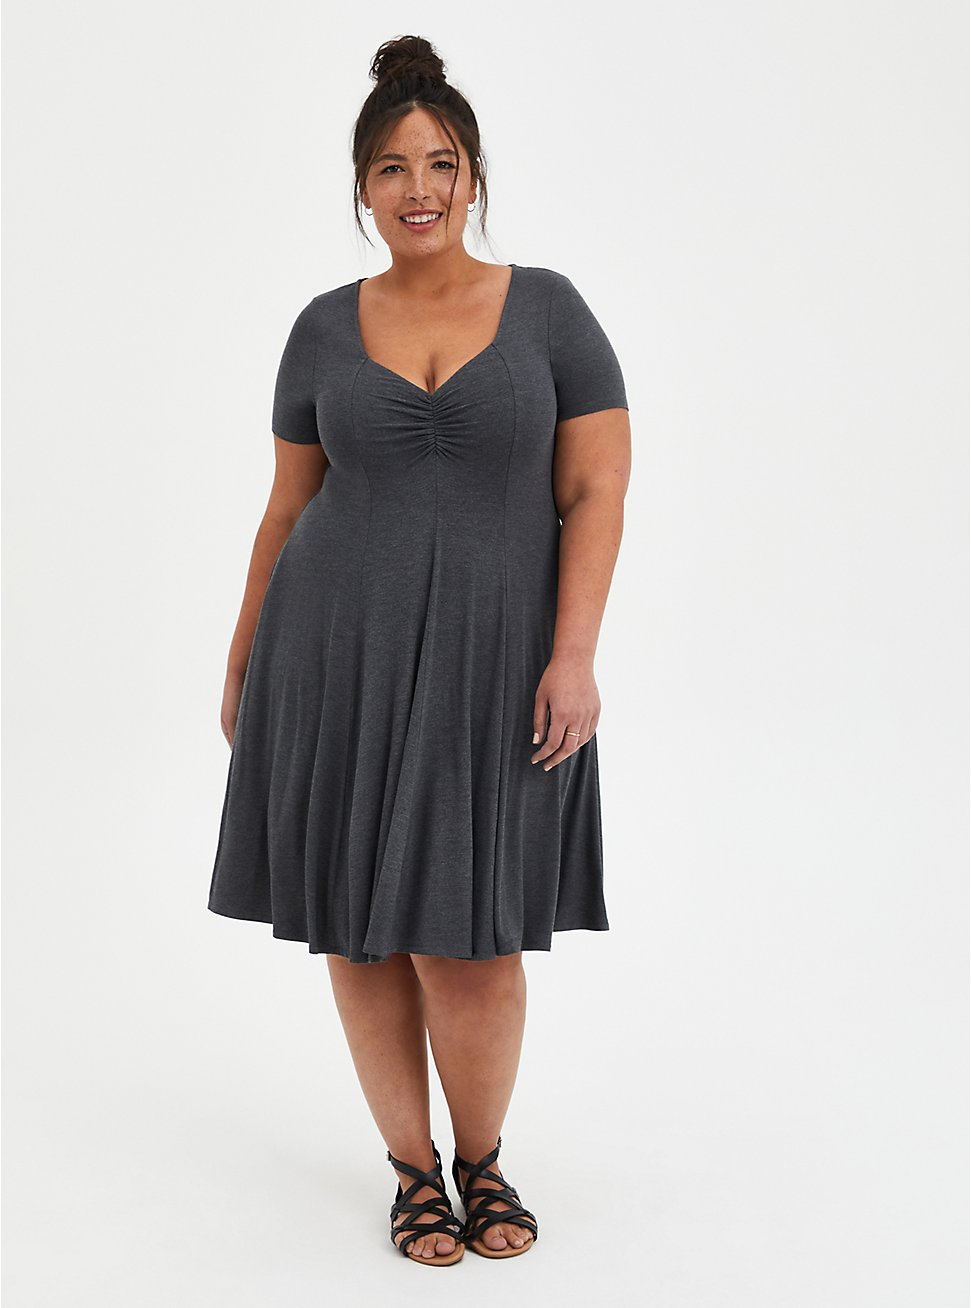 Sweetheart Fit & Flare - Super Soft Heather Grey, CHARCOAL, hi-res